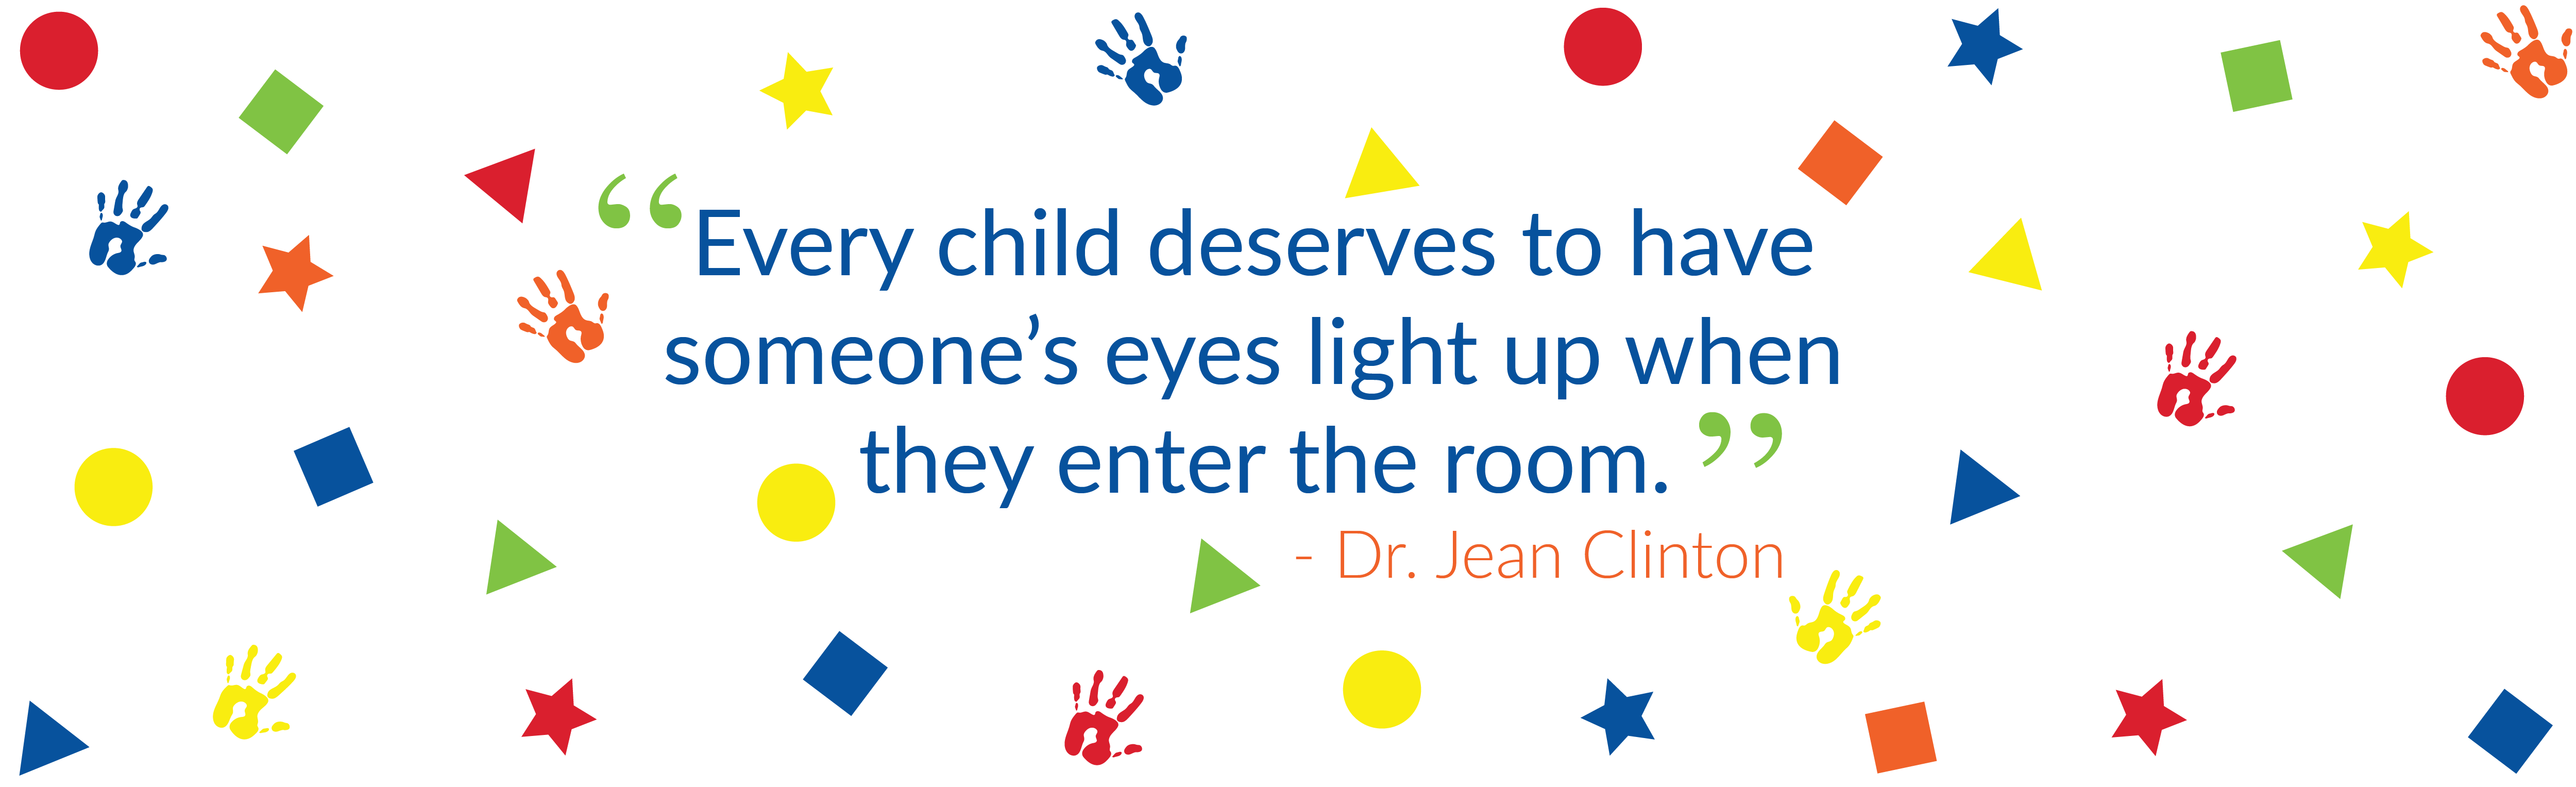 """Every child deserves to have someone's eyes light up when they enter the room."""